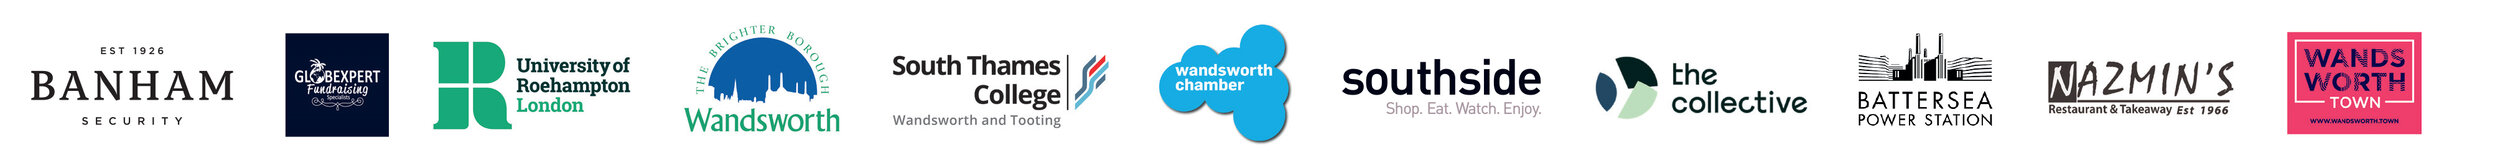 Wandsworth Awards Sponsors Email Footer.jpg